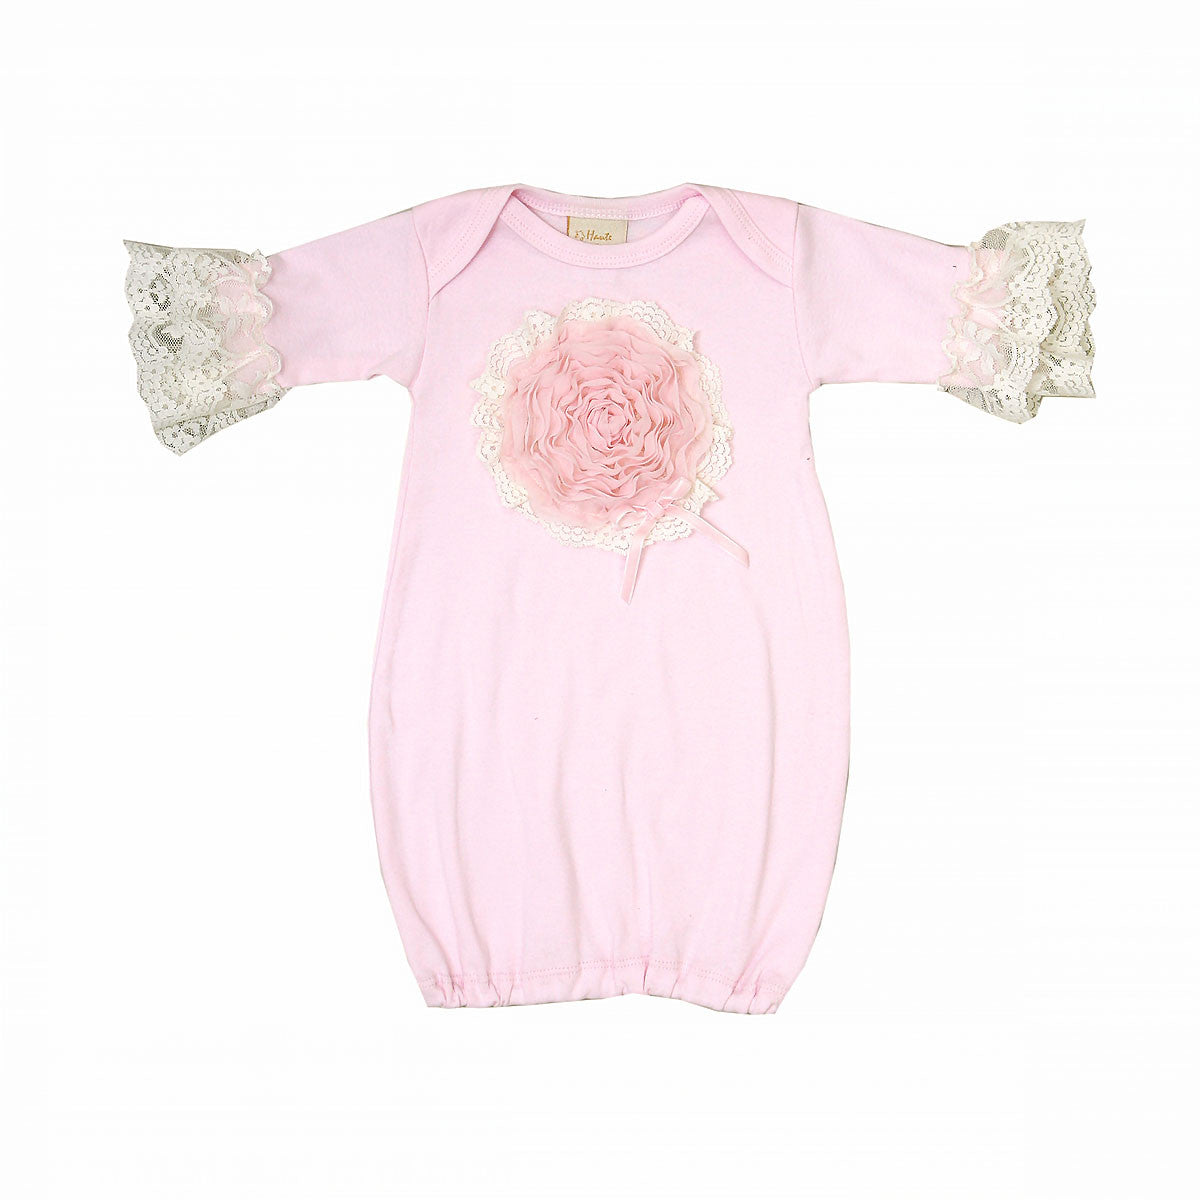 Haute Baby Pink Lullabye Gown (sz 0-3m) FALL 2014 PREORDER